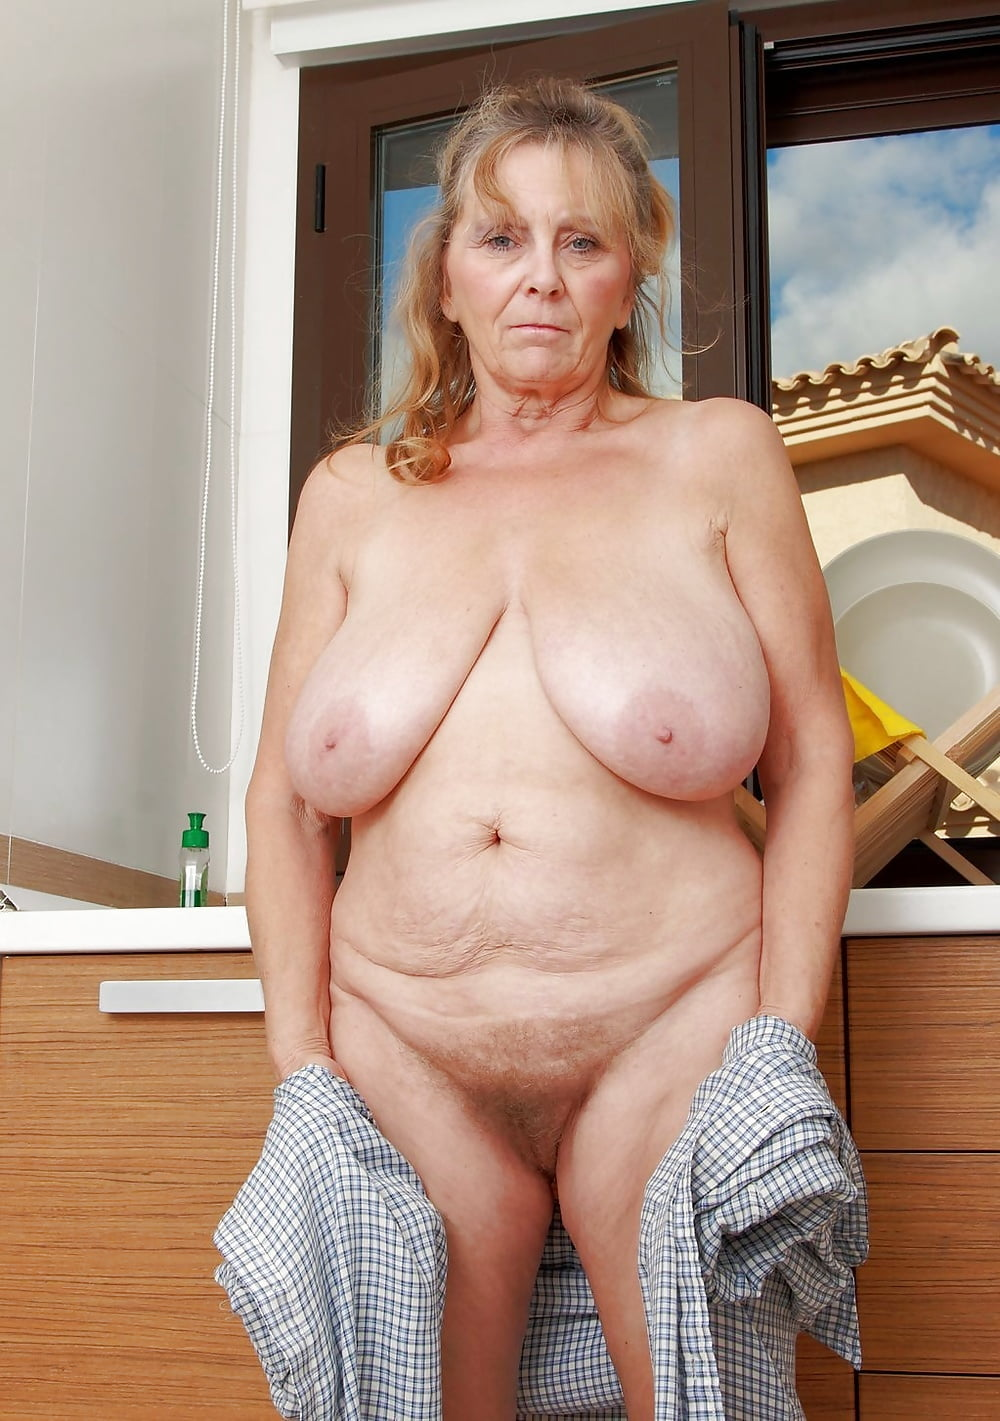 naked-grannies-freesh-nude-girl-forced-sex-free-pictures